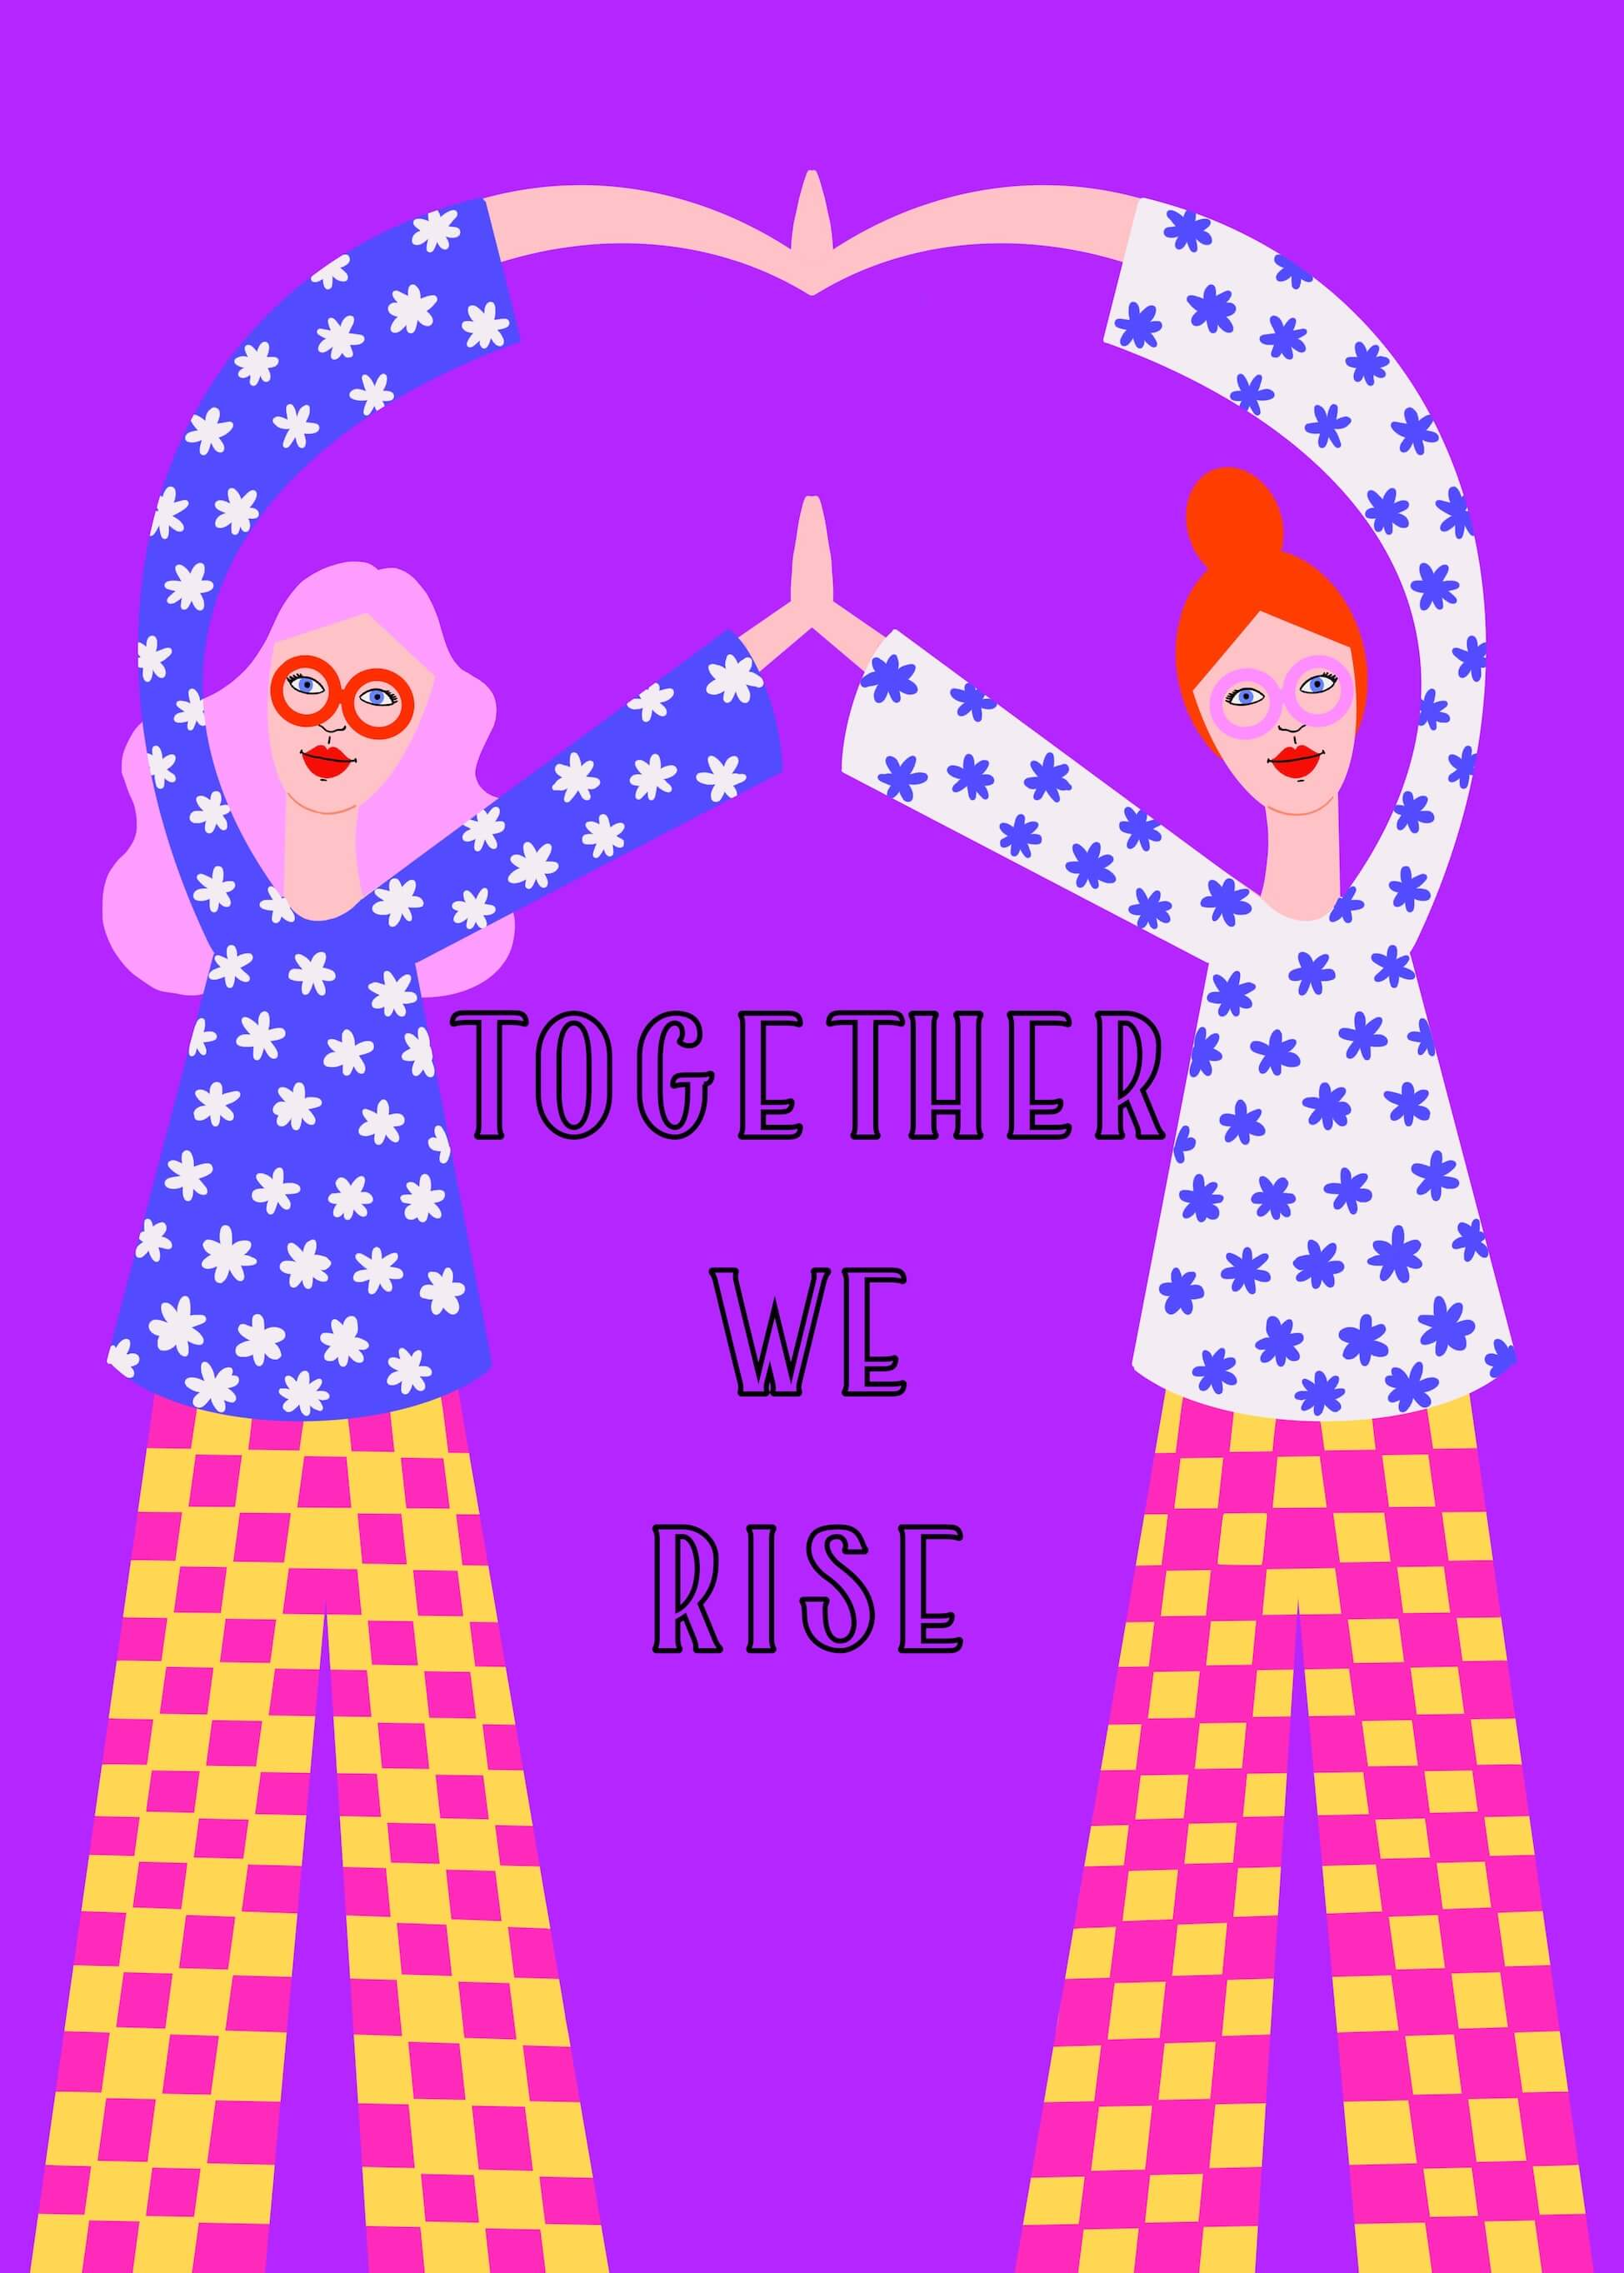 Together We Rise main image